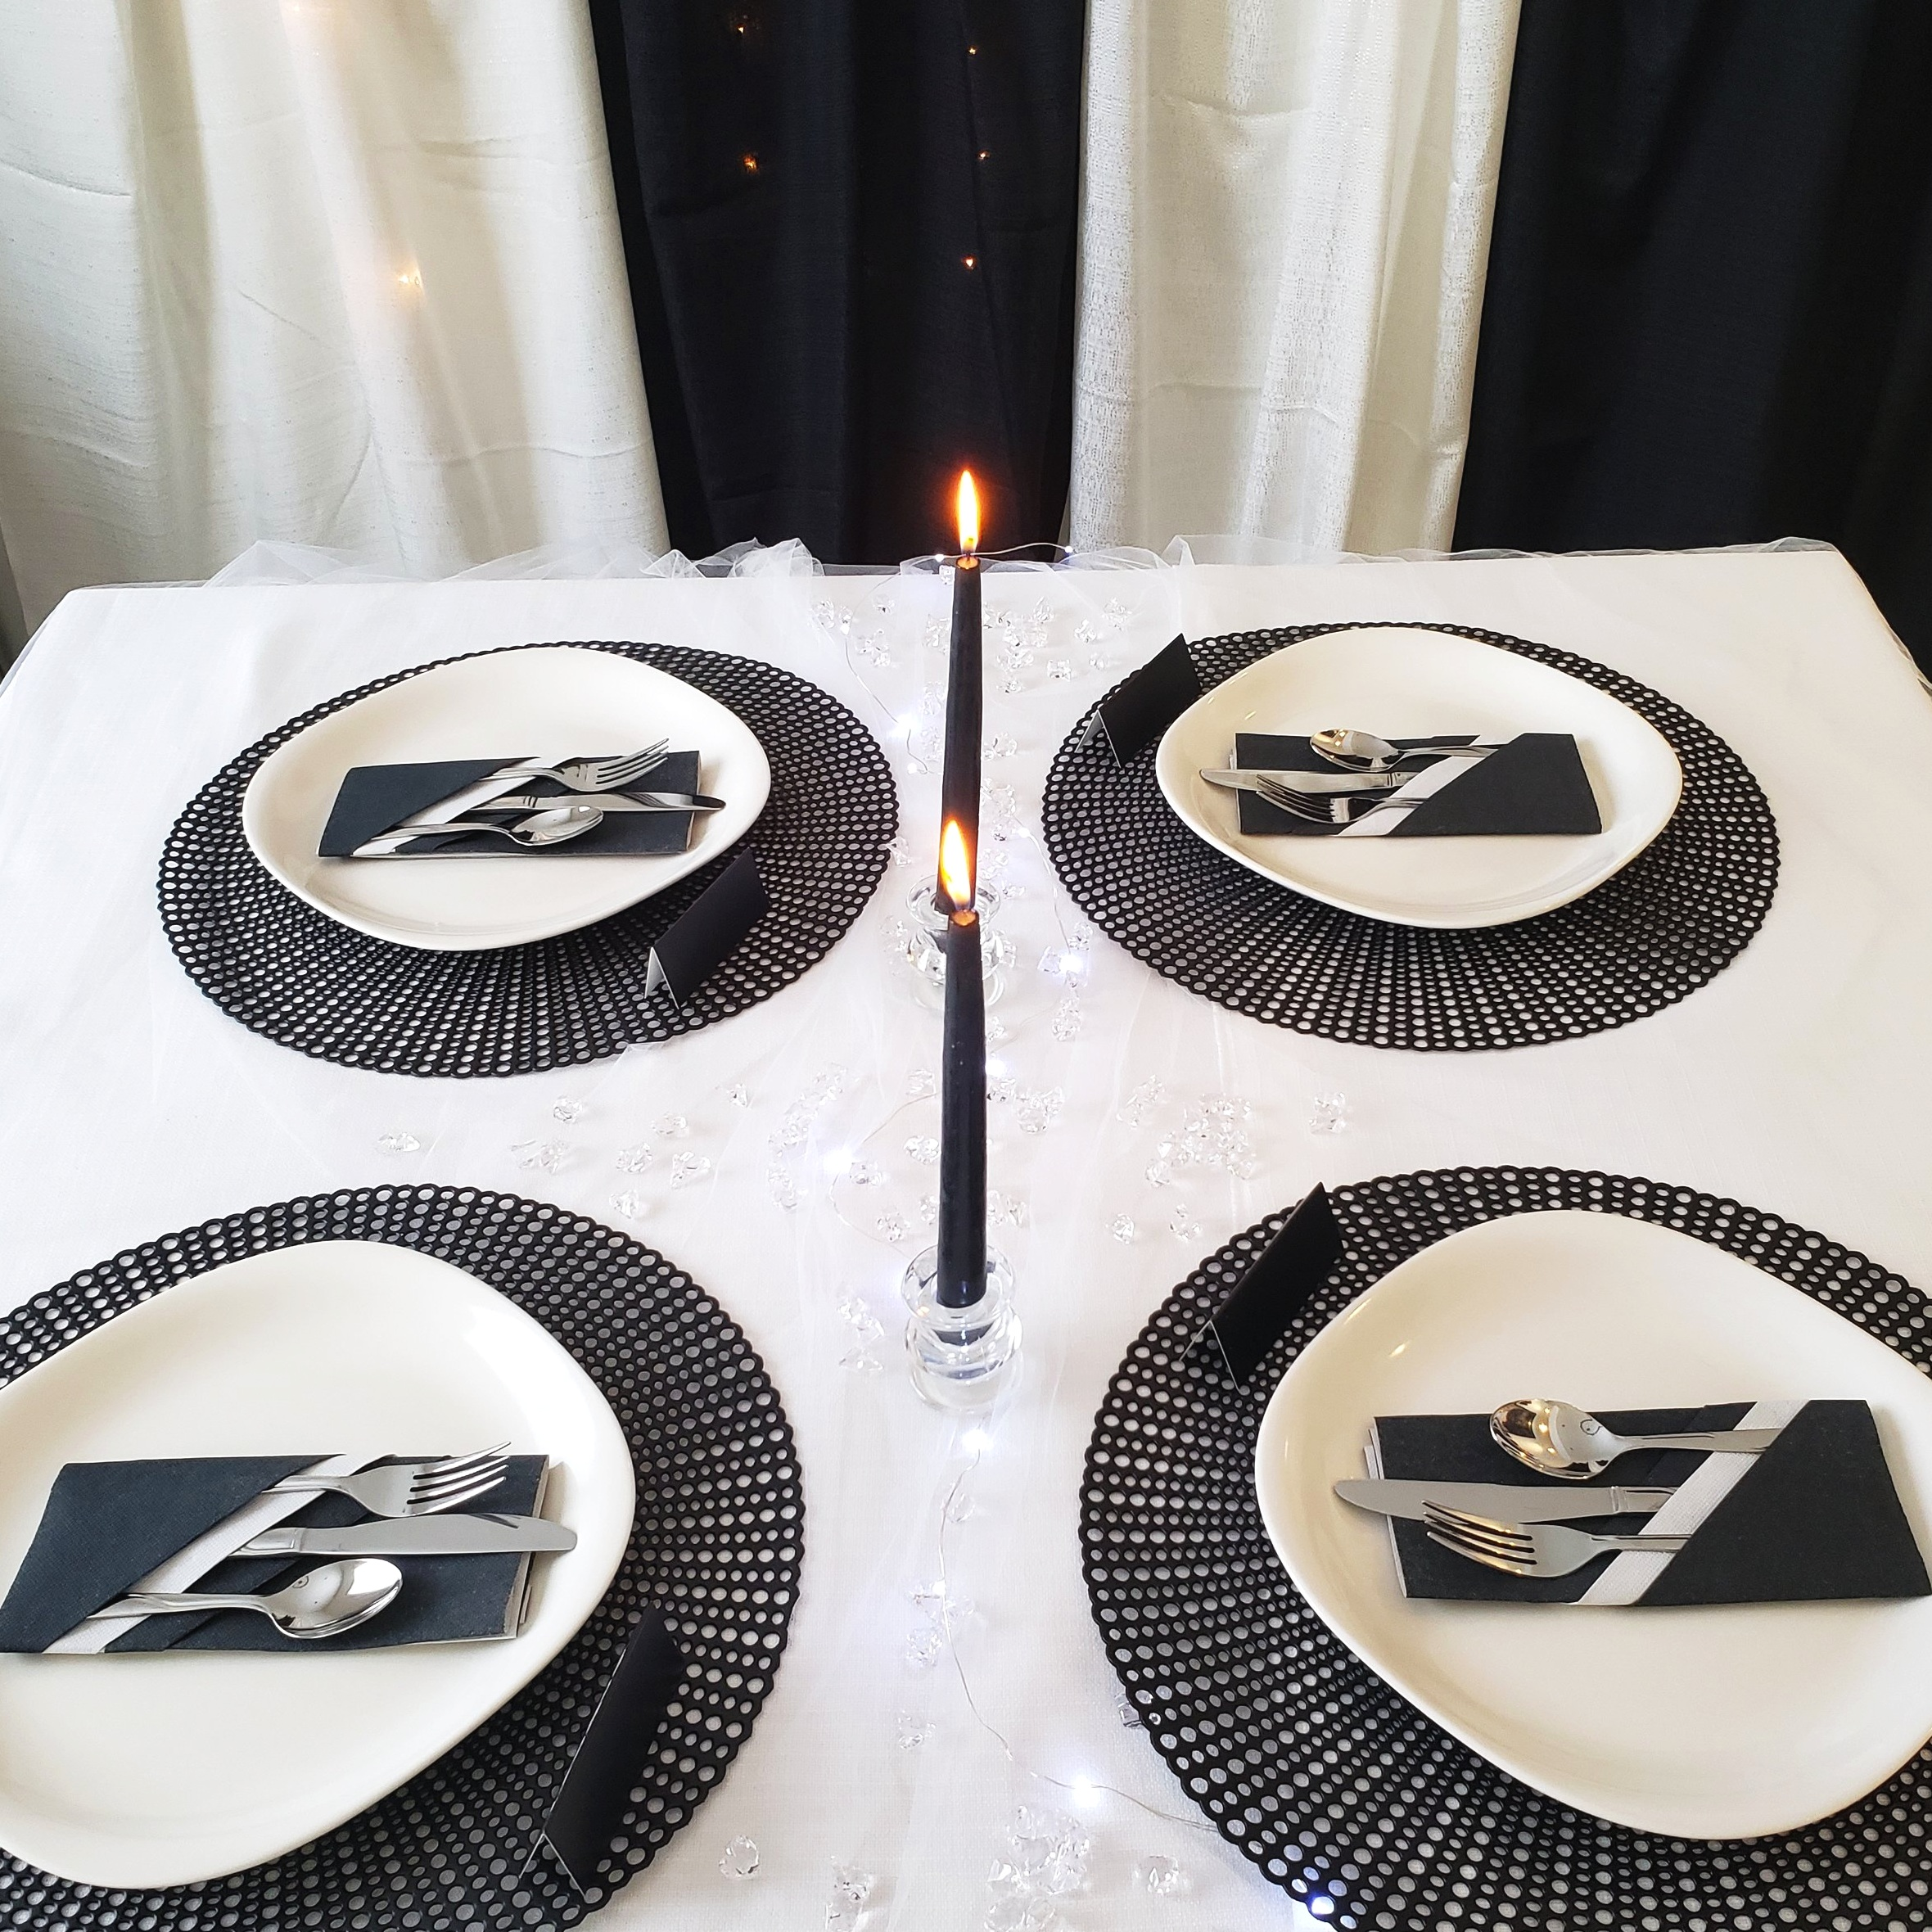 Classic Black & White Table - Black and white table setting. We used a white table cloth topped with white sheer. Added some small clear stones, glass candle holders and black candles. Finished it off with black place mats, black place cards, white plates and cool folded napkins.